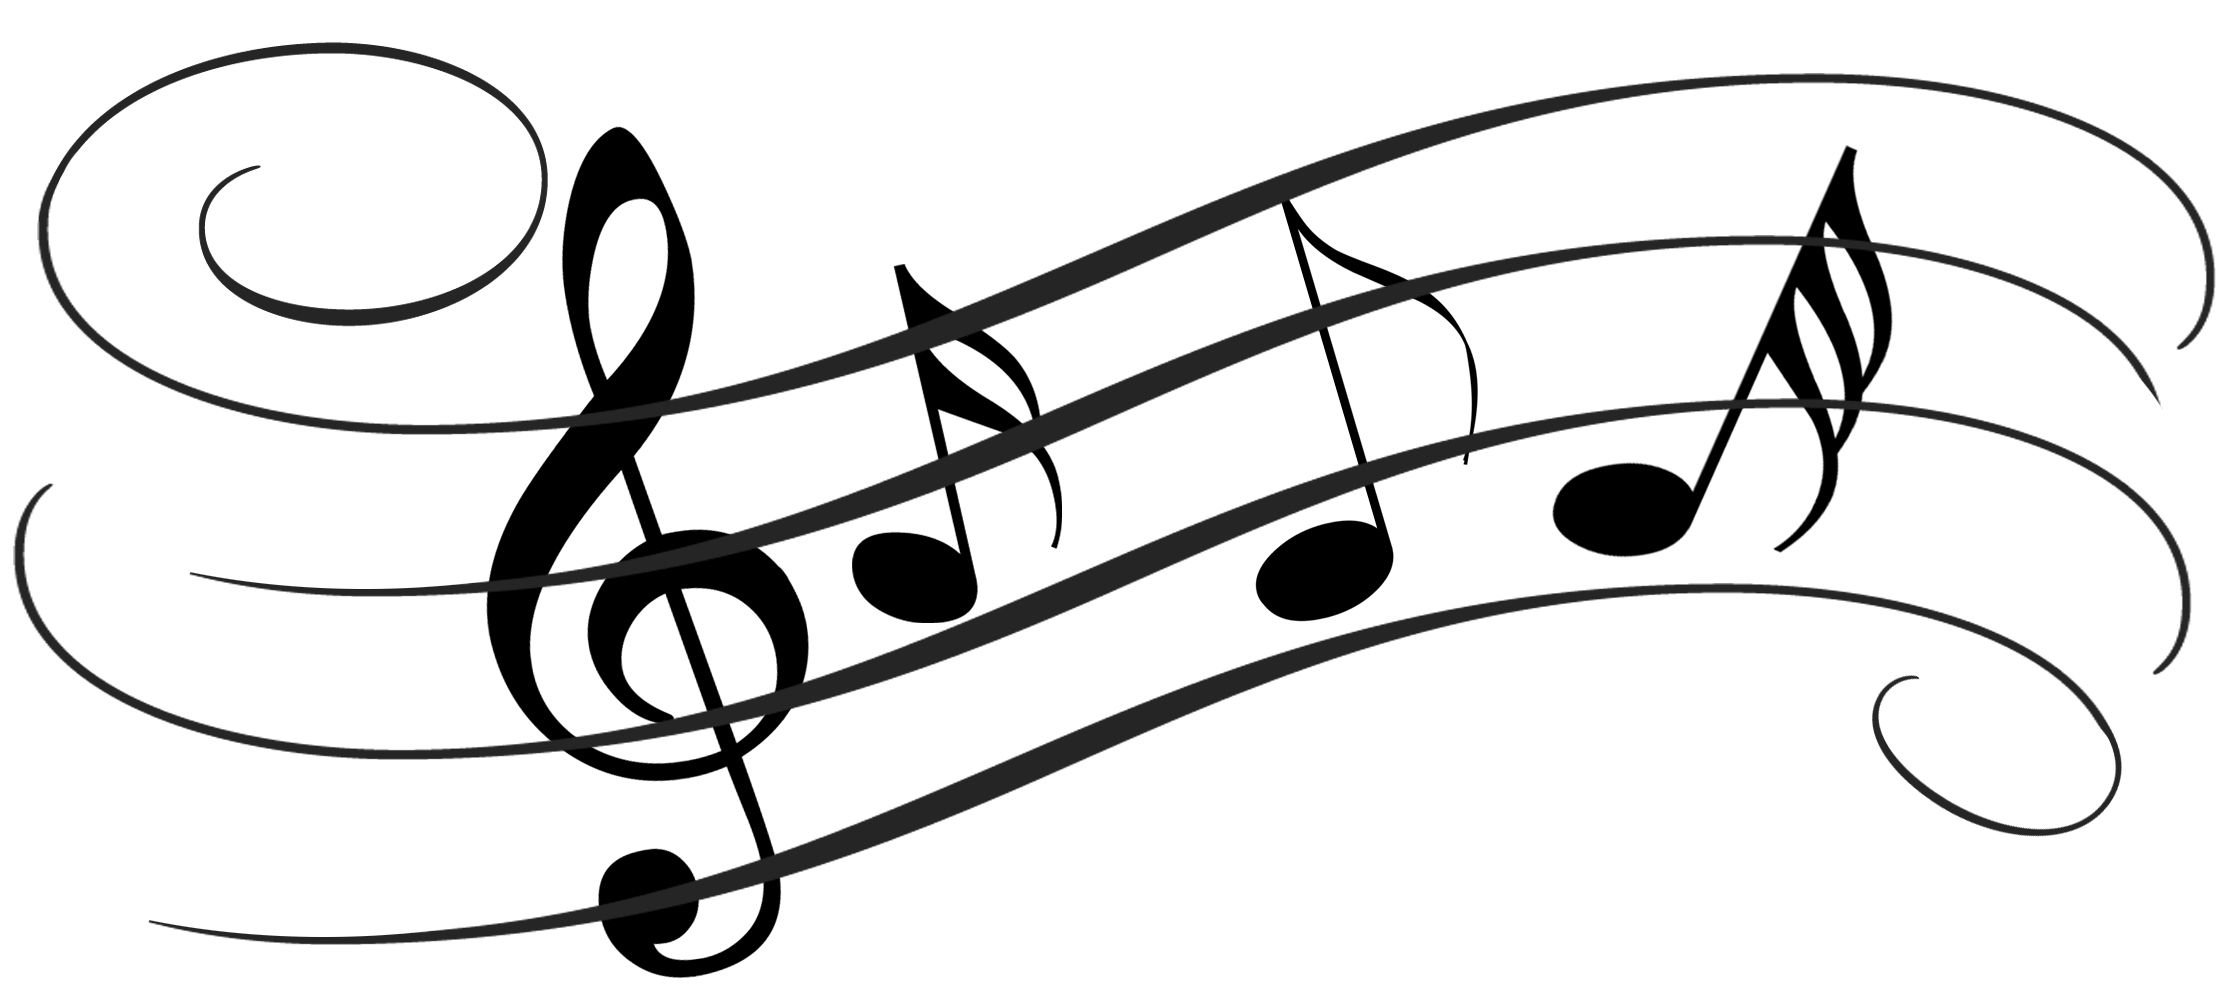 Music clipart.  collection of notes